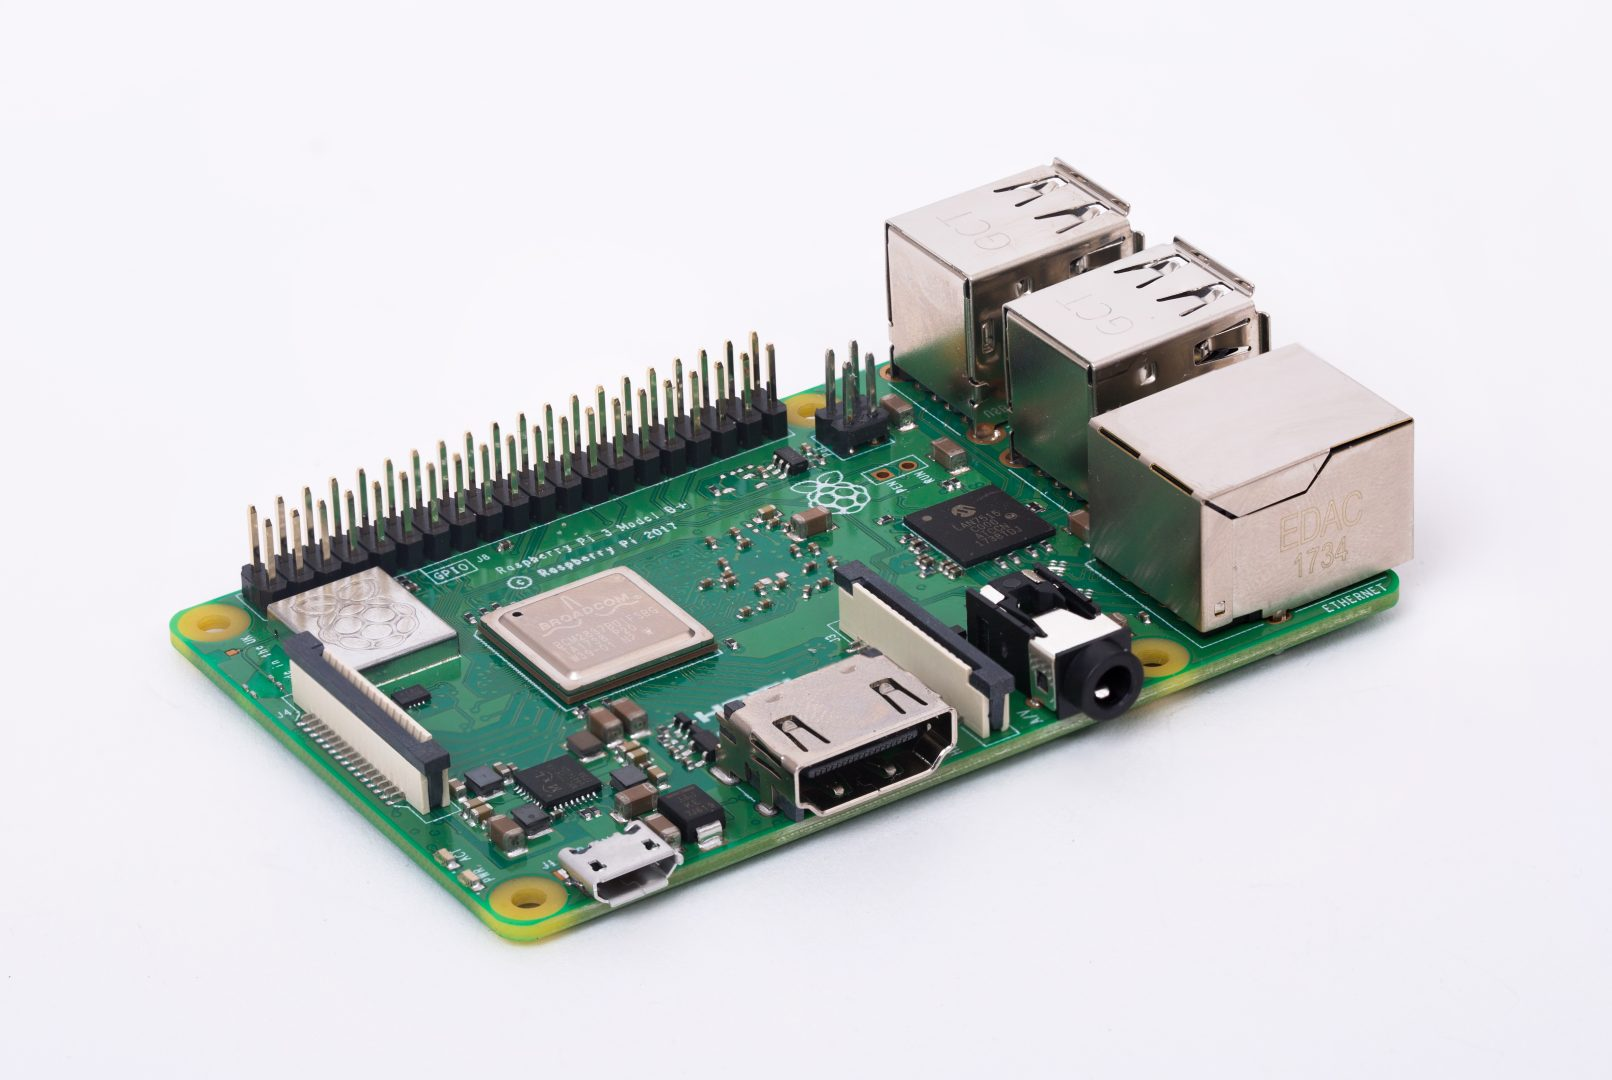 Микрокомпьютер Raspberry Pi 3 Model B+ Retail, 1GB RAM, Cortex-A53 (ARMv8) 64-bit SoC @ 1.4GHz Broadcom BCM2837B0 CPU, WiFi, Bluetooth